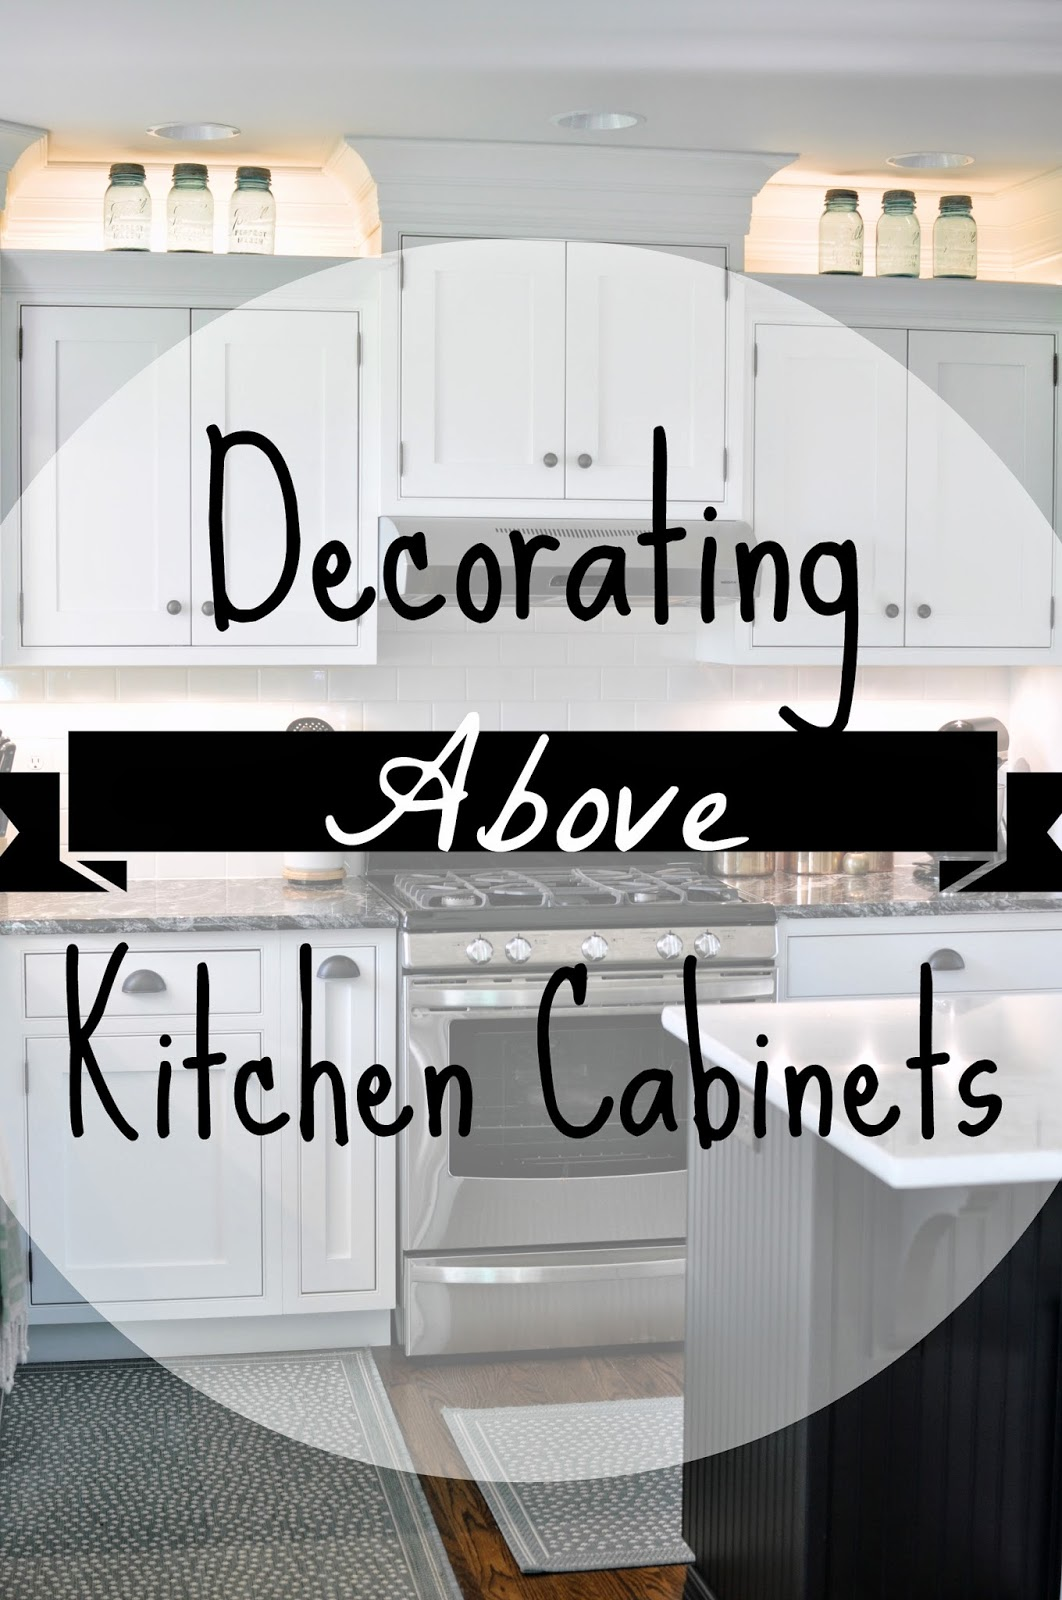 decorating above cabinets decorating above kitchen cabinets Decorating Above the Cabinets